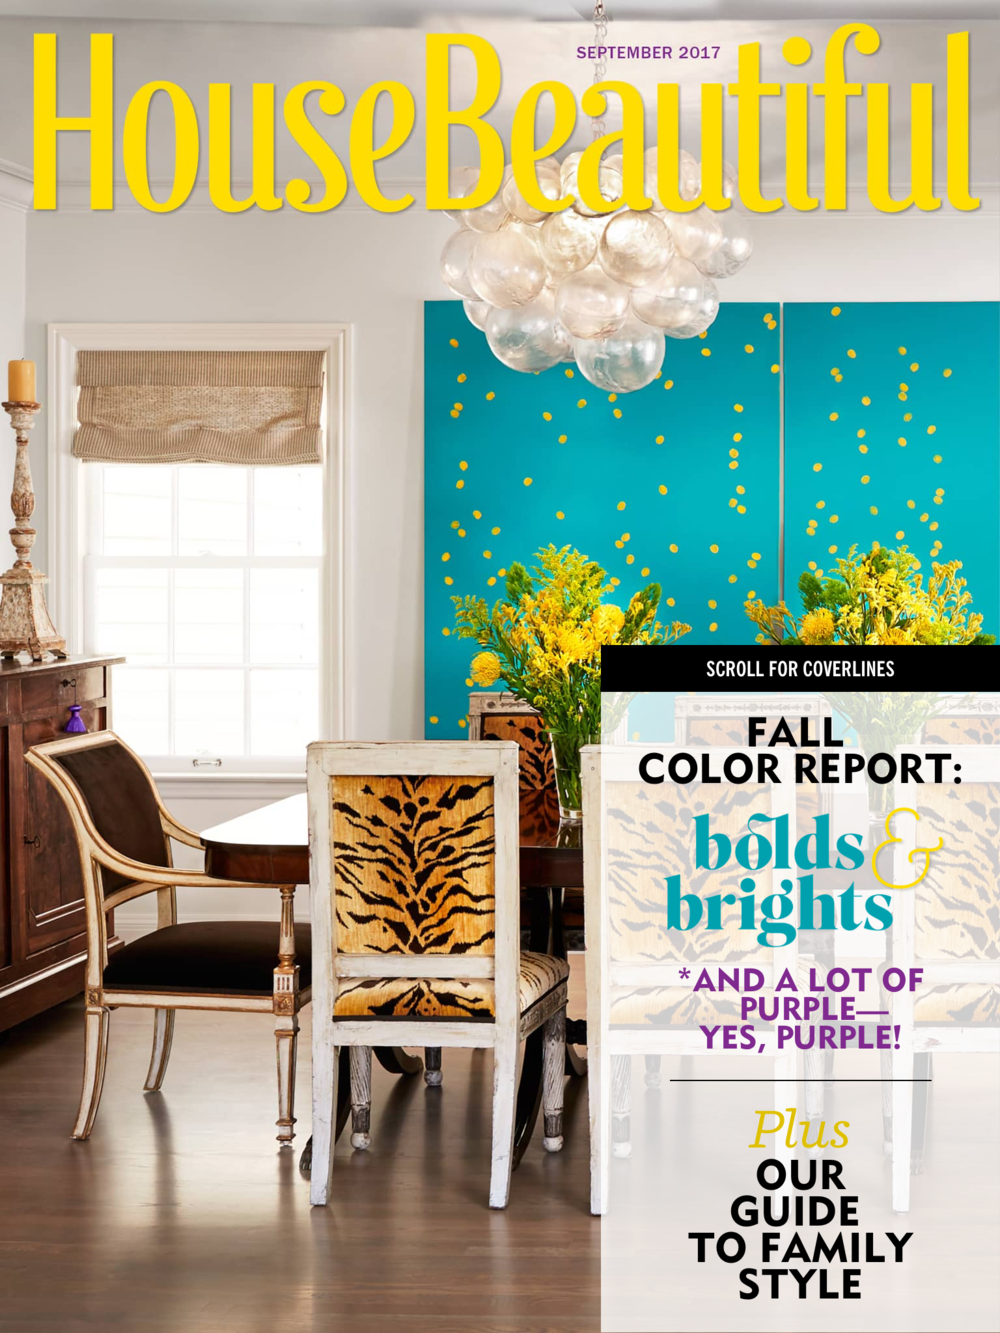 HOUSE BEAUTIFUL- SEPTEMBER 2017